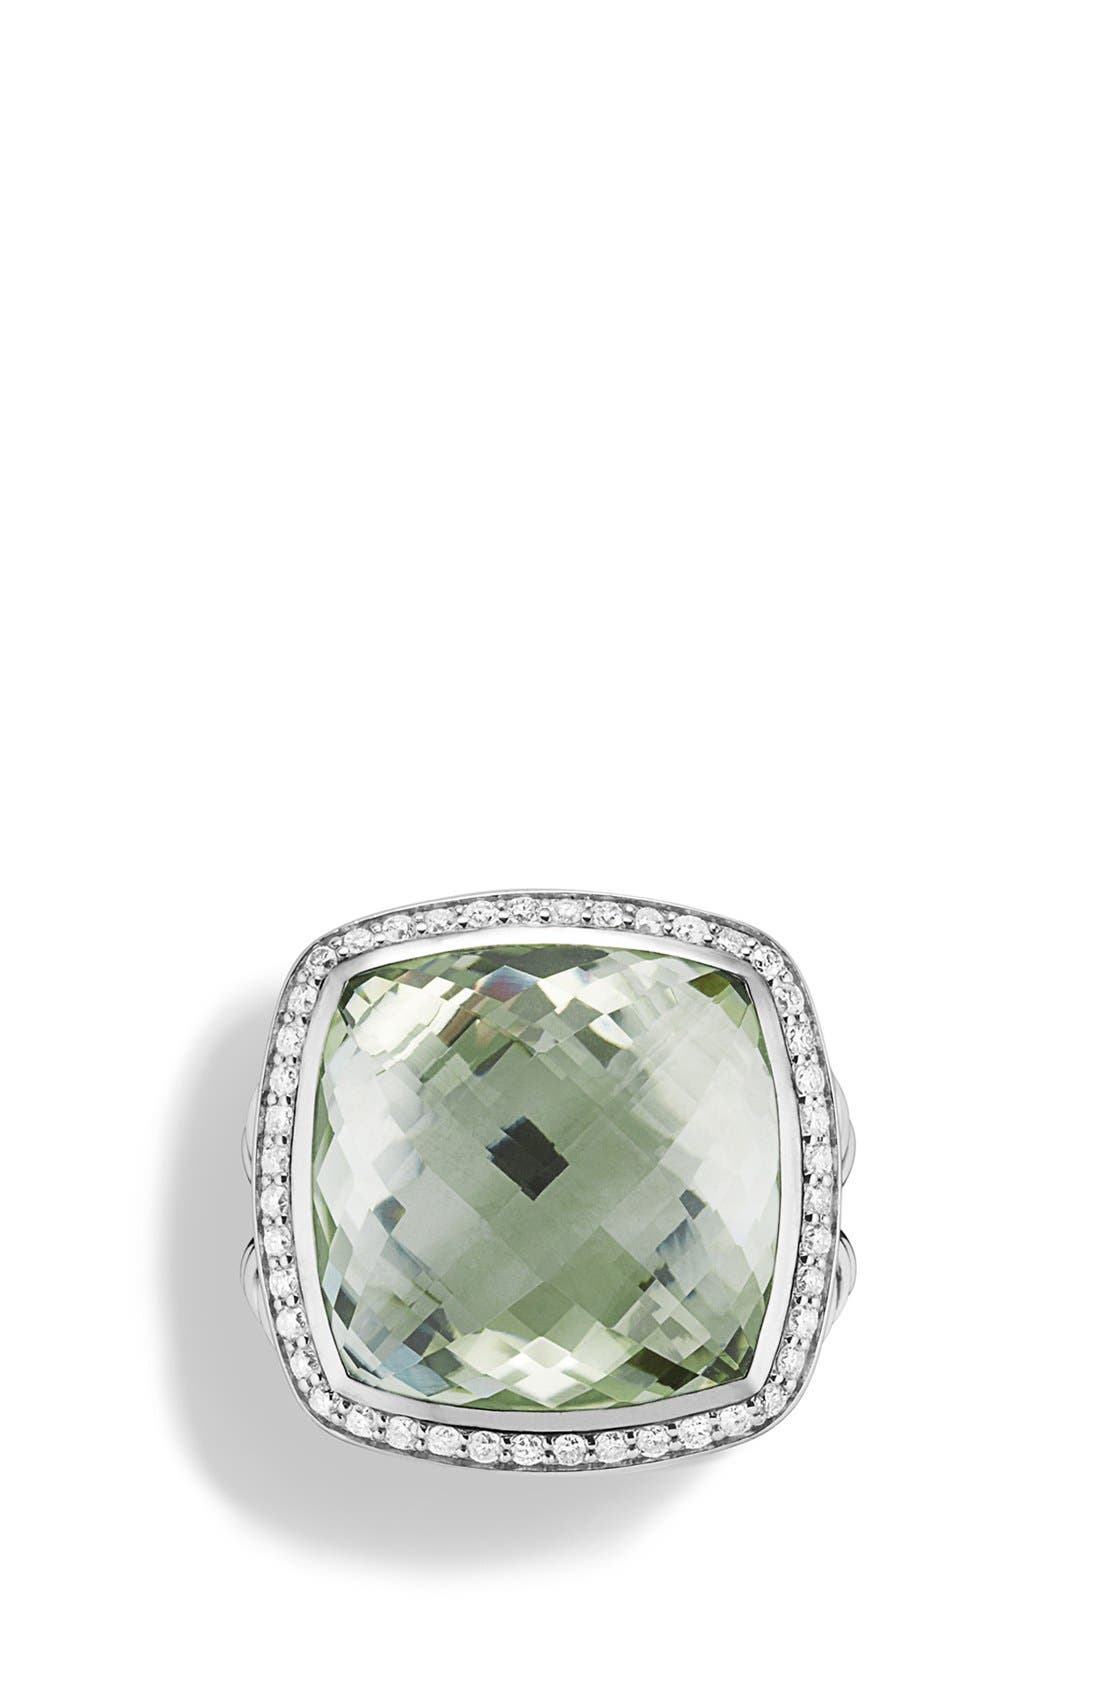 DAVID YURMAN,                             'Albion' Ring with Diamonds,                             Alternate thumbnail 3, color,                             PRASIOLITE